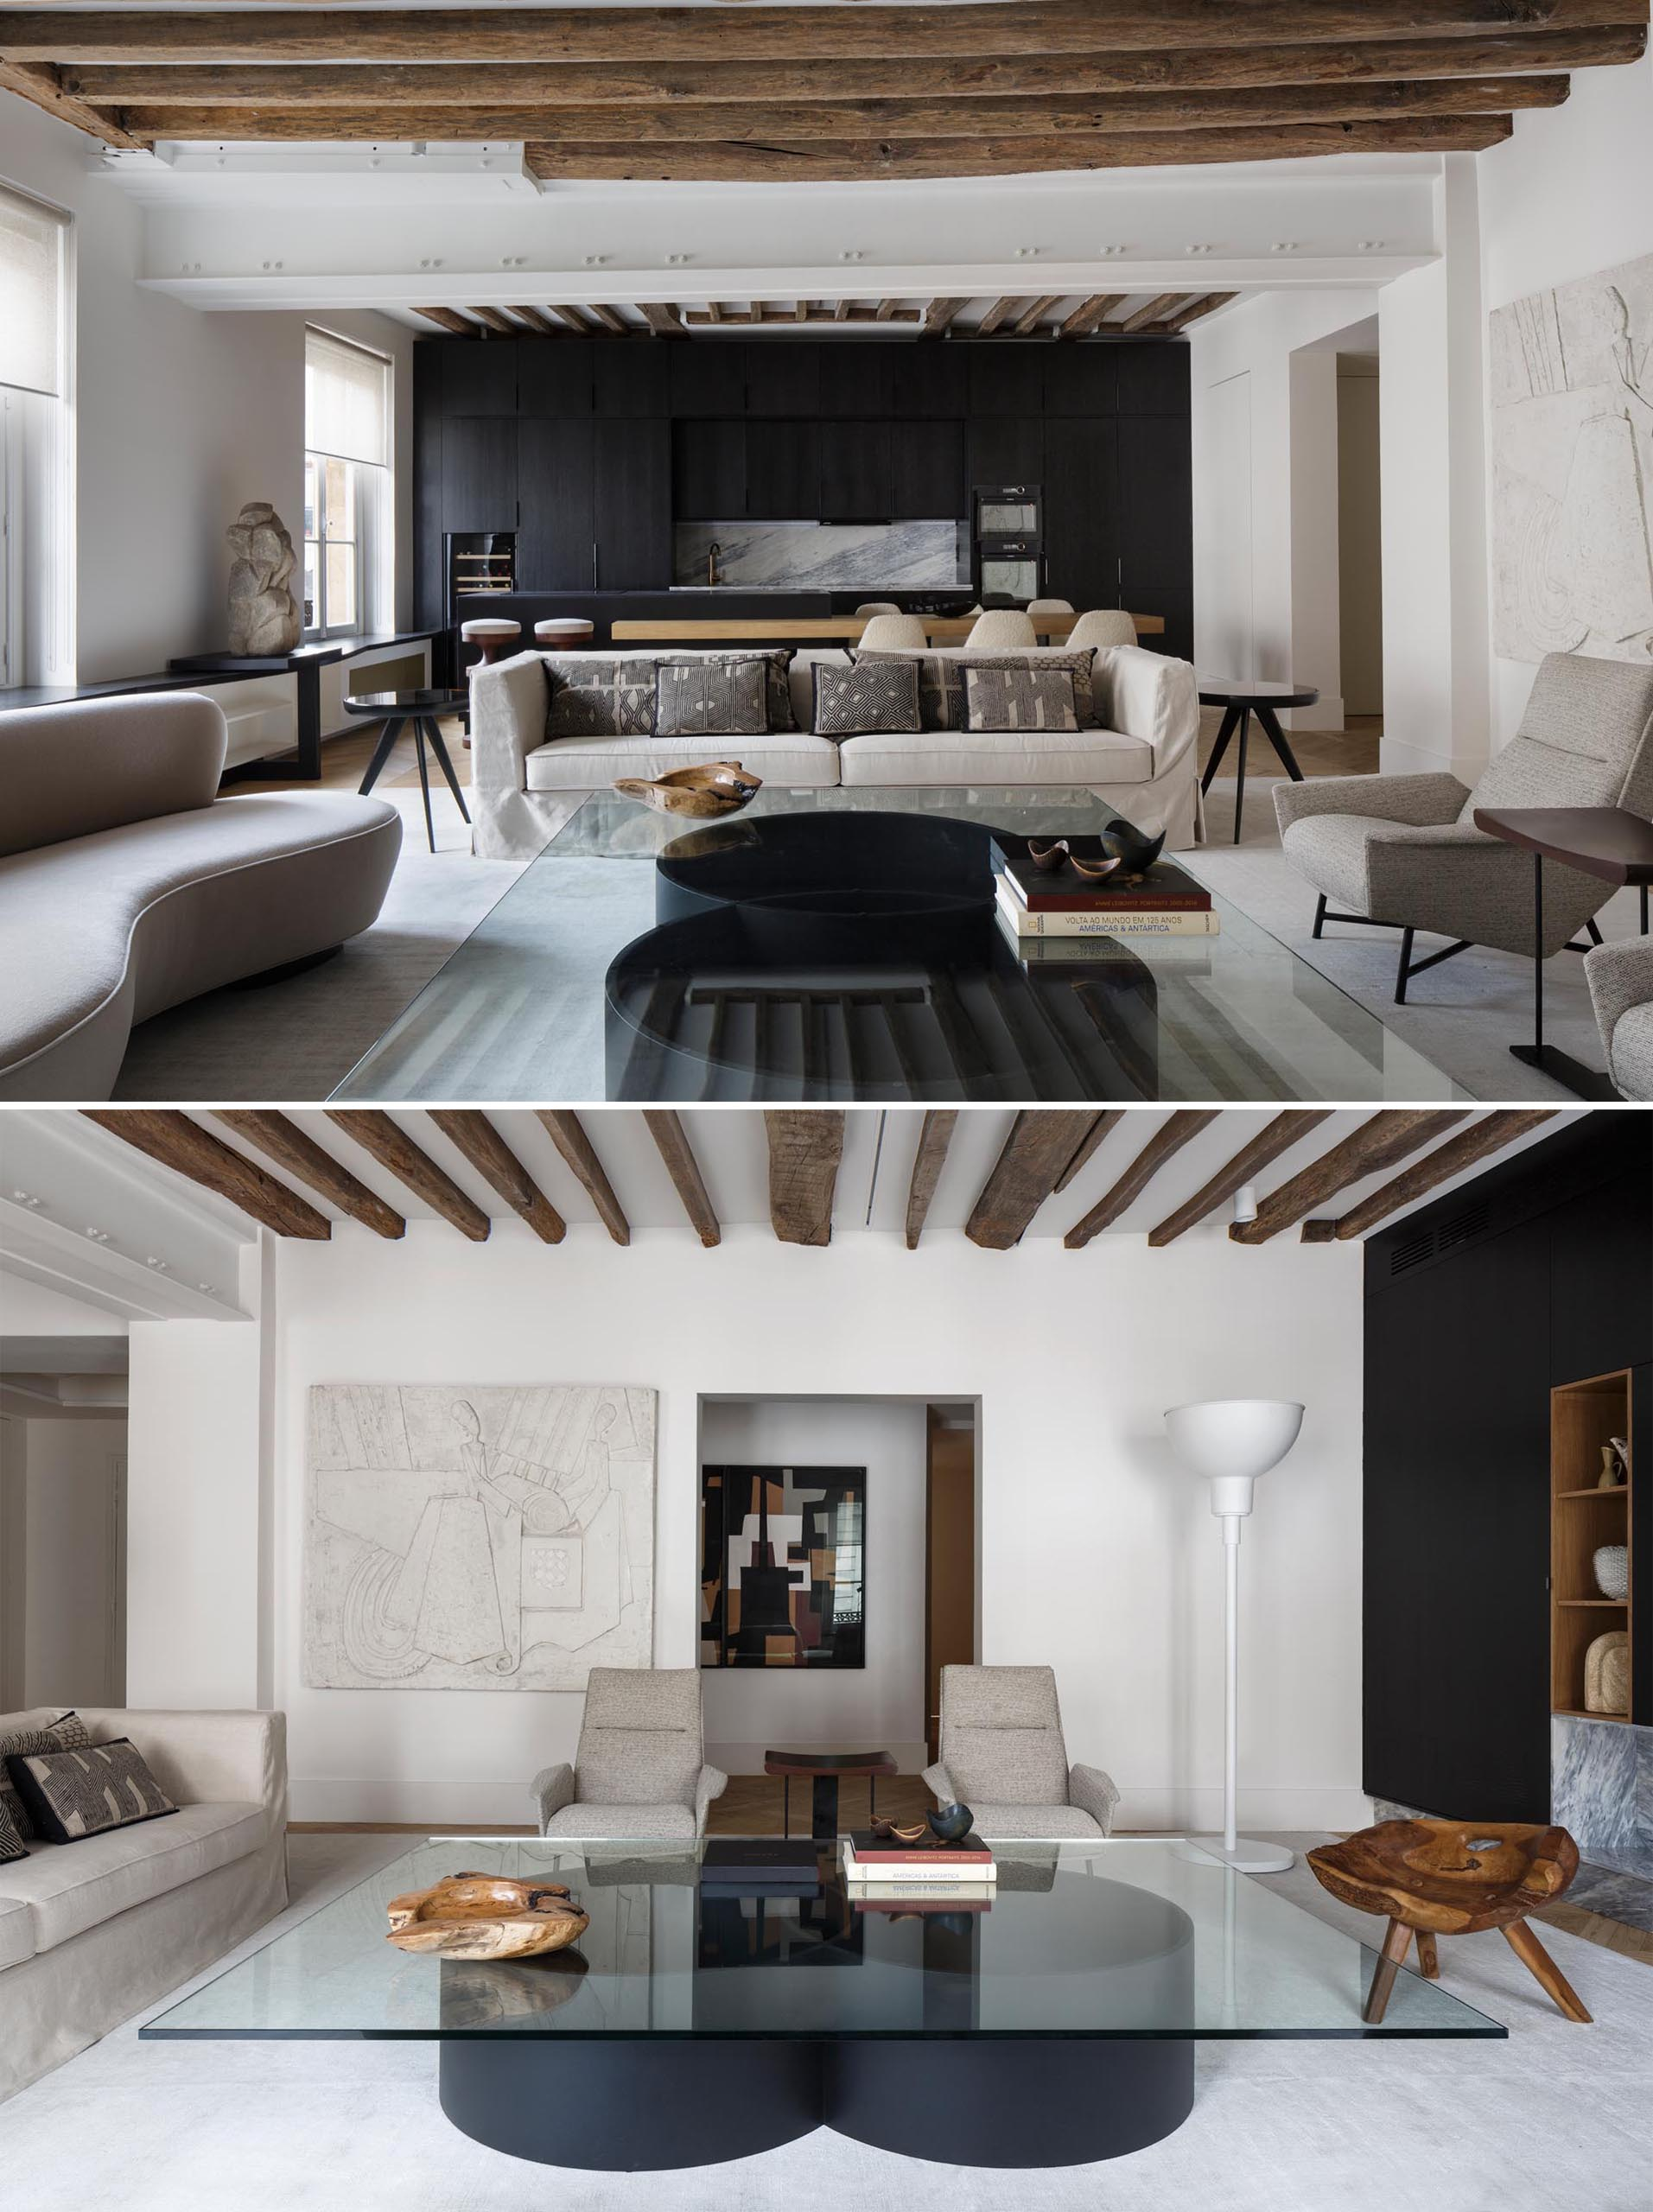 A modern matte black kitchen contrasts the neutral colored living room.